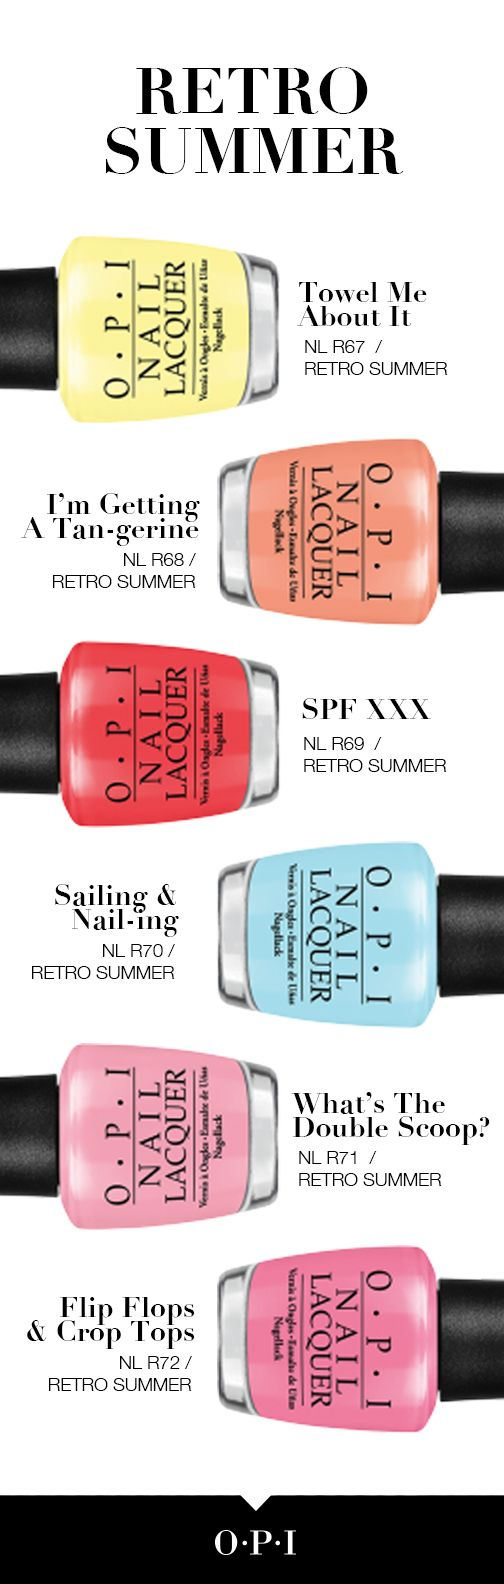 #RetroSummer by OPI is here, available in original lacquers and GelColor.